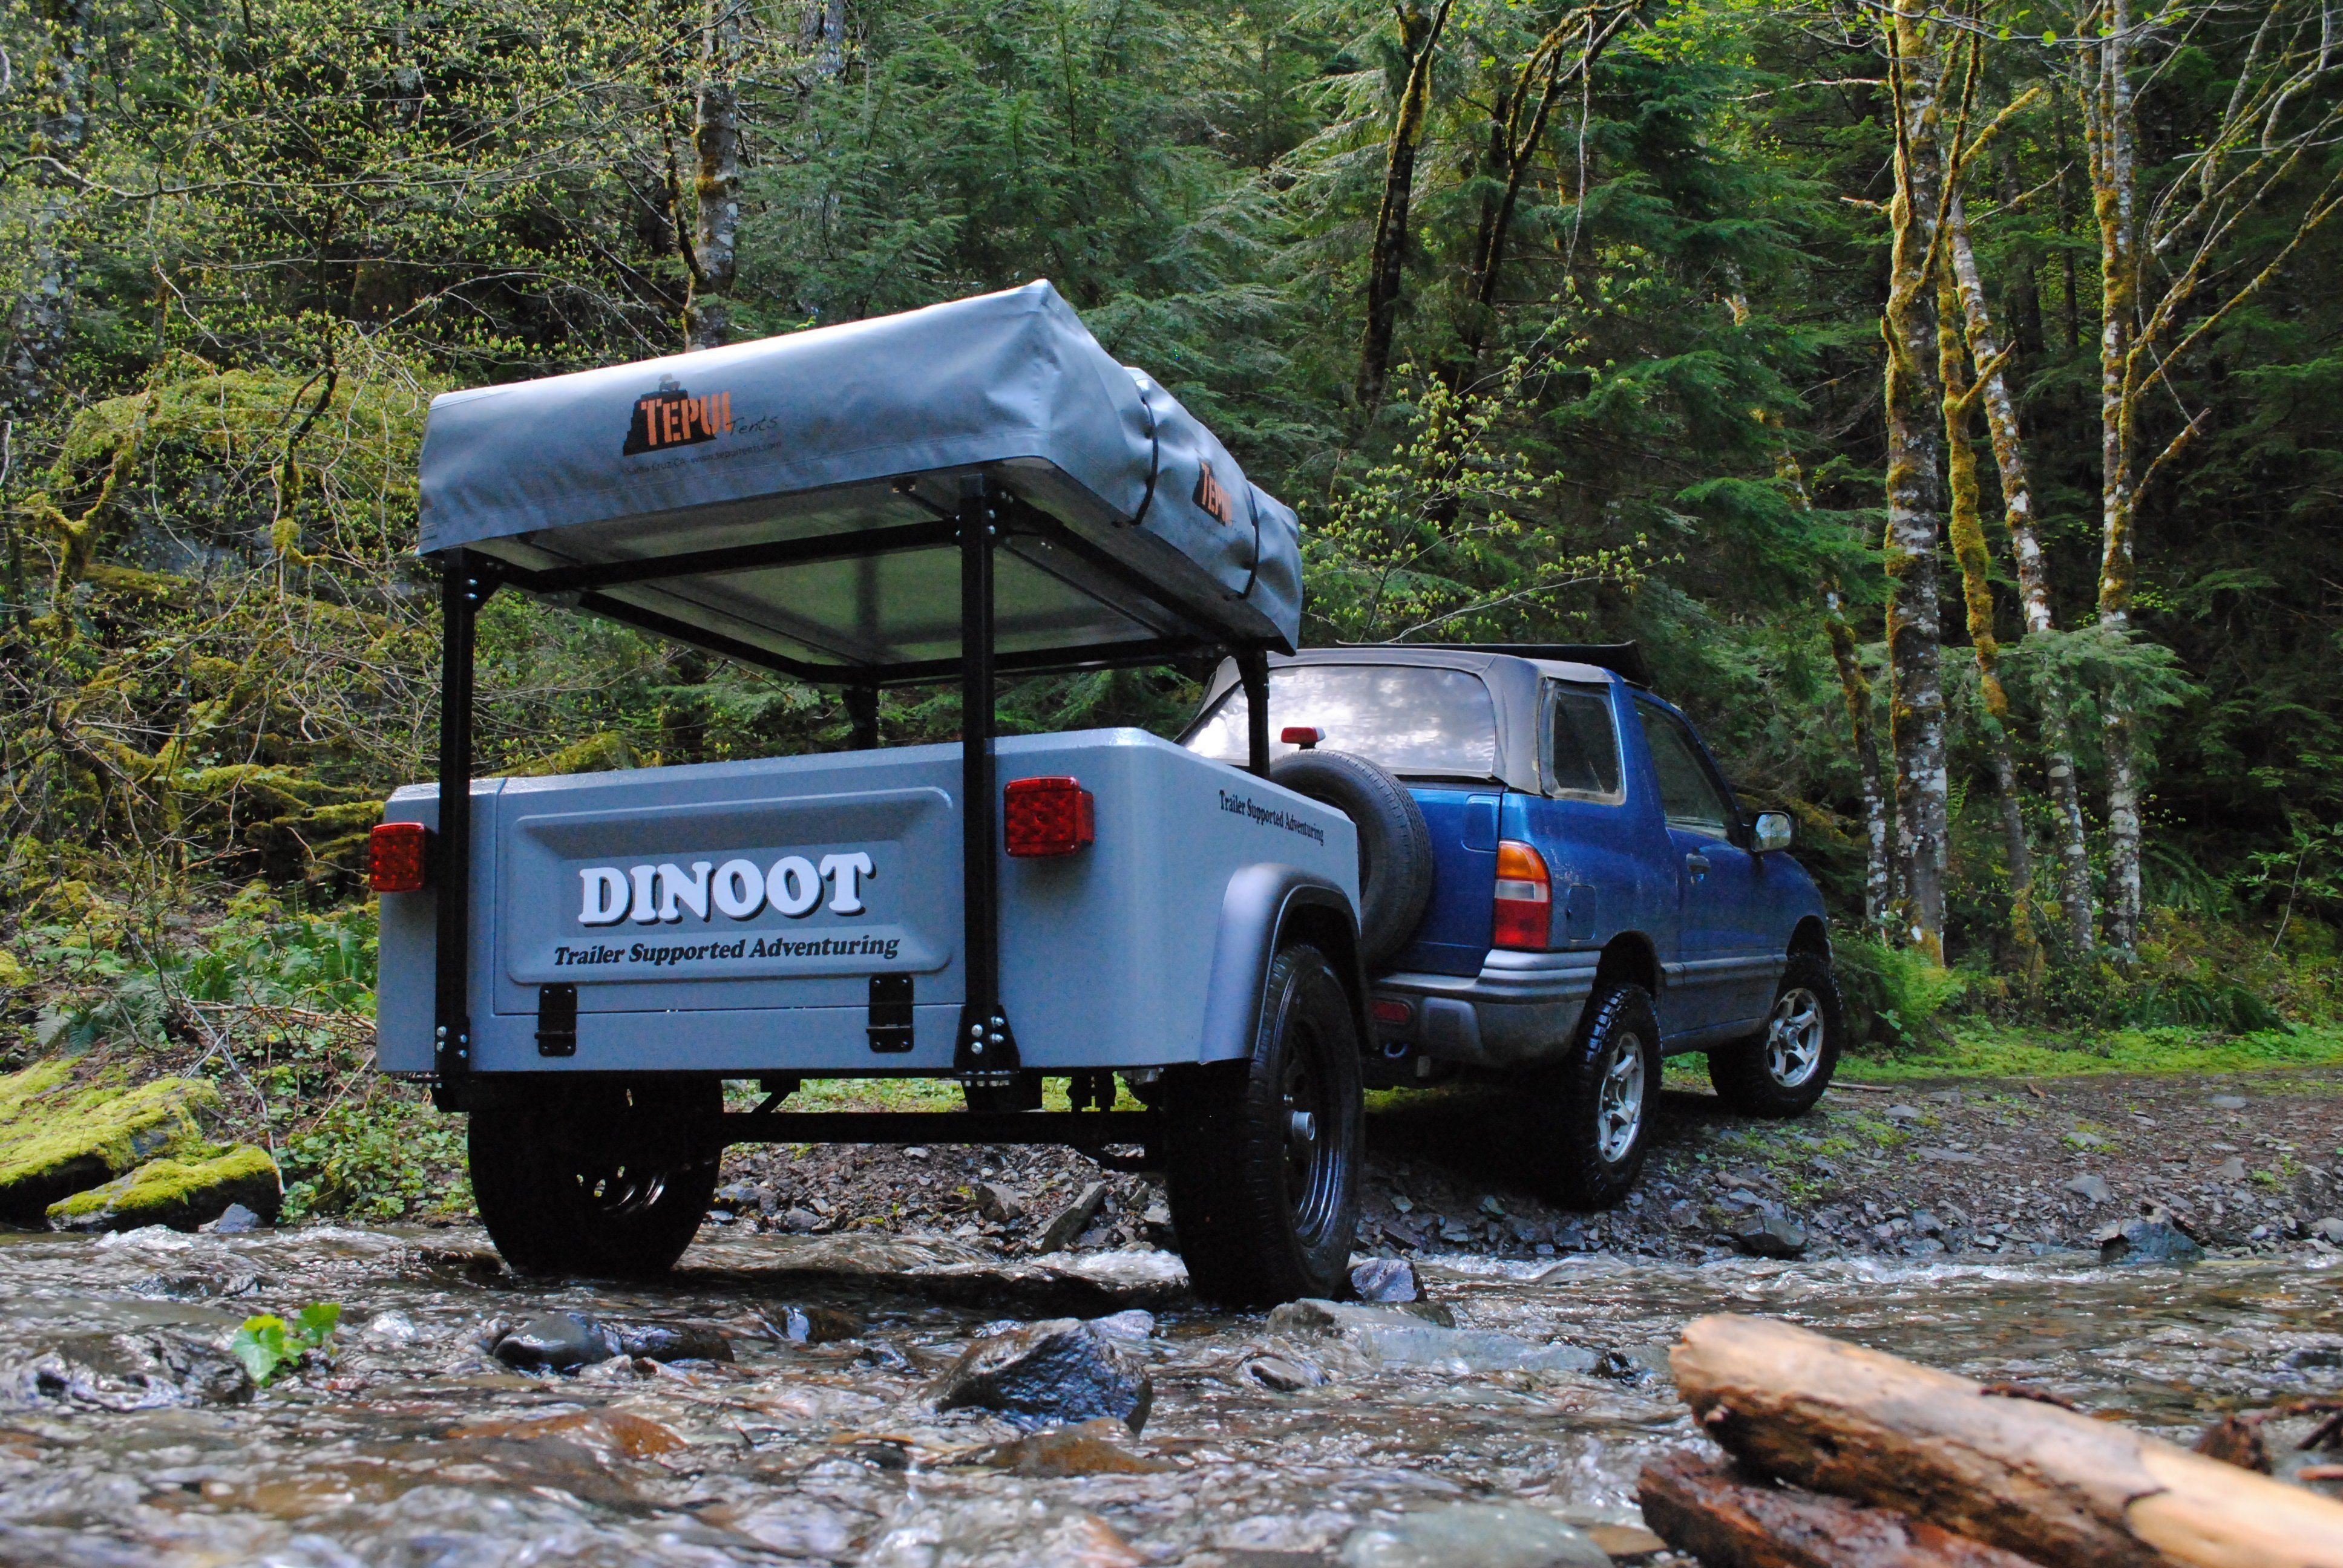 Dinoot Jeep Trailer by Compact Camping Trailers